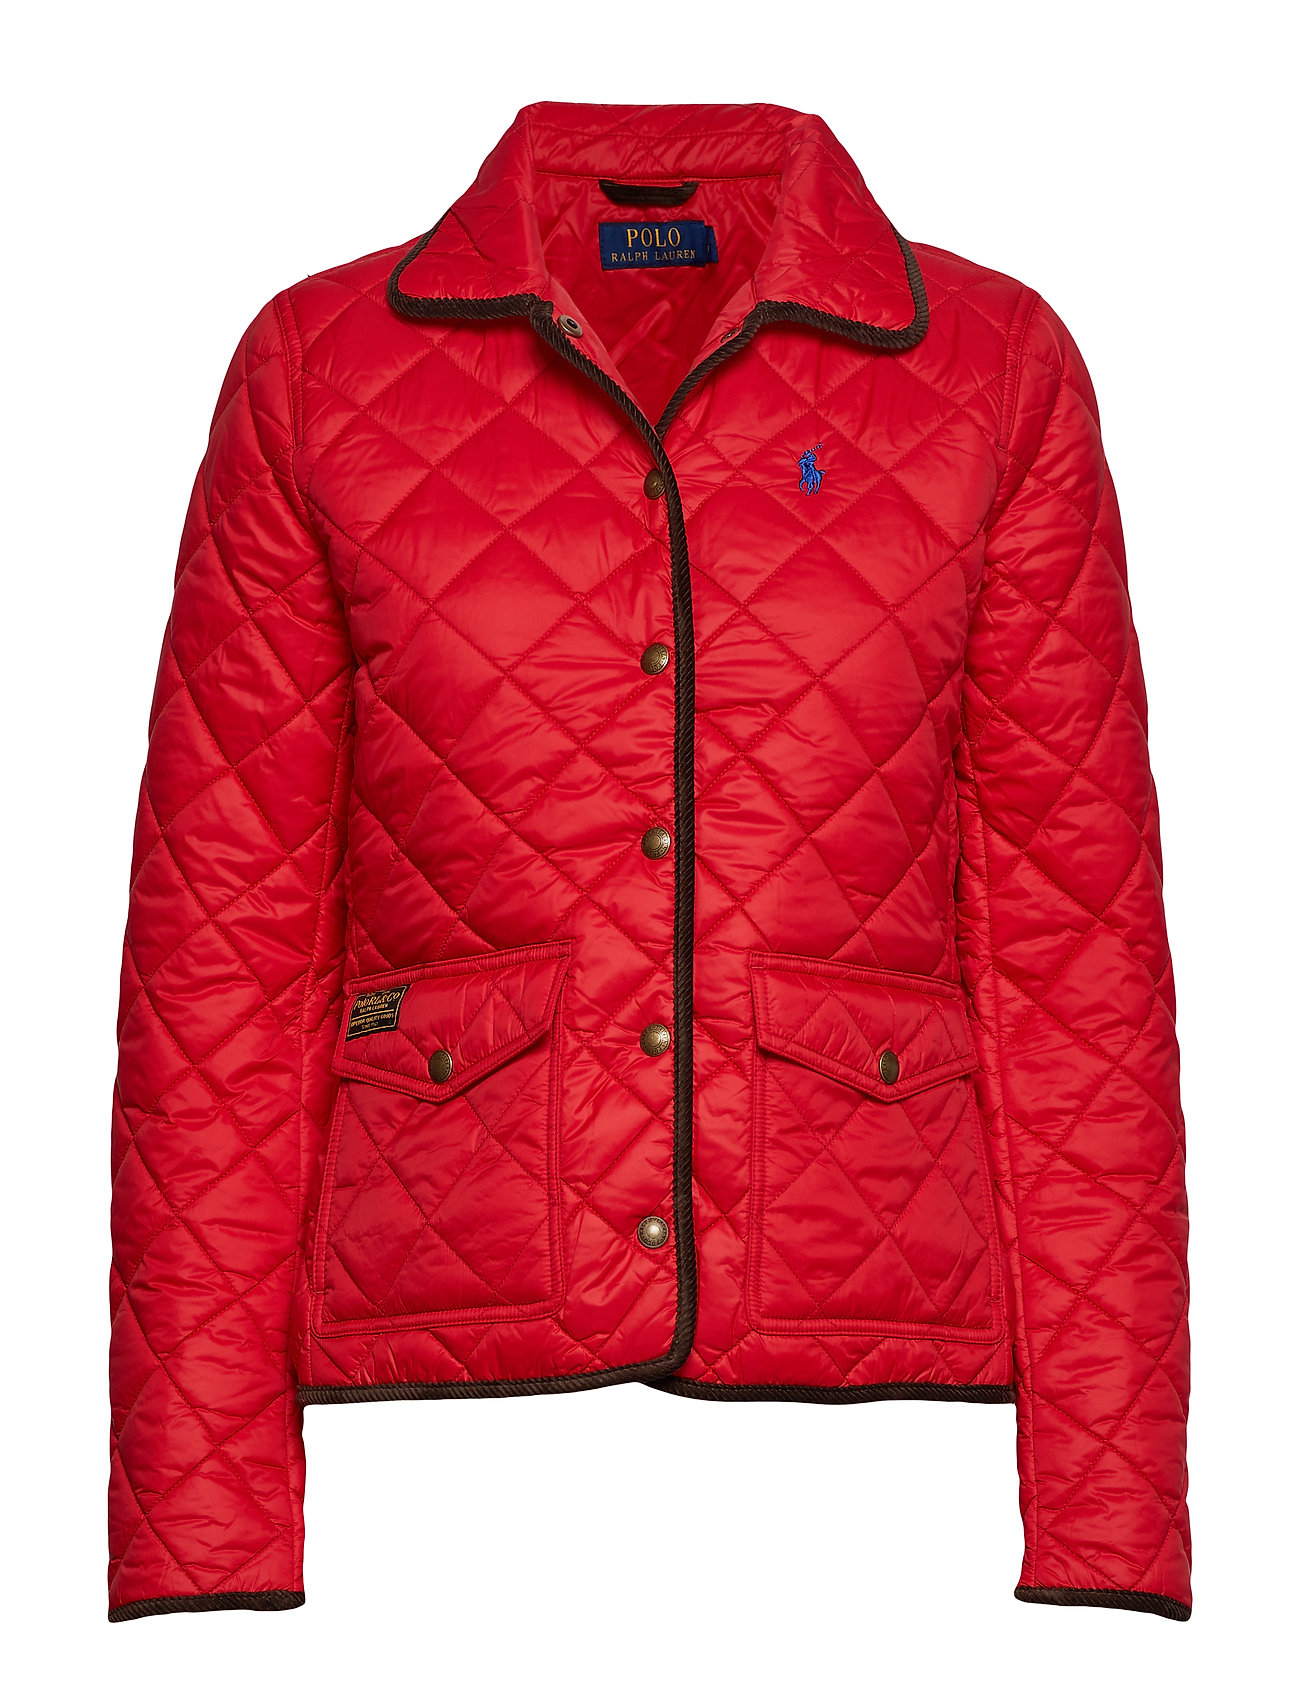 RedPolo Jacketinjection Ralph Jacketinjection Lauren Jacketinjection RedPolo Ralph Quilted Quilted Quilted Lauren MULSjqzVGp